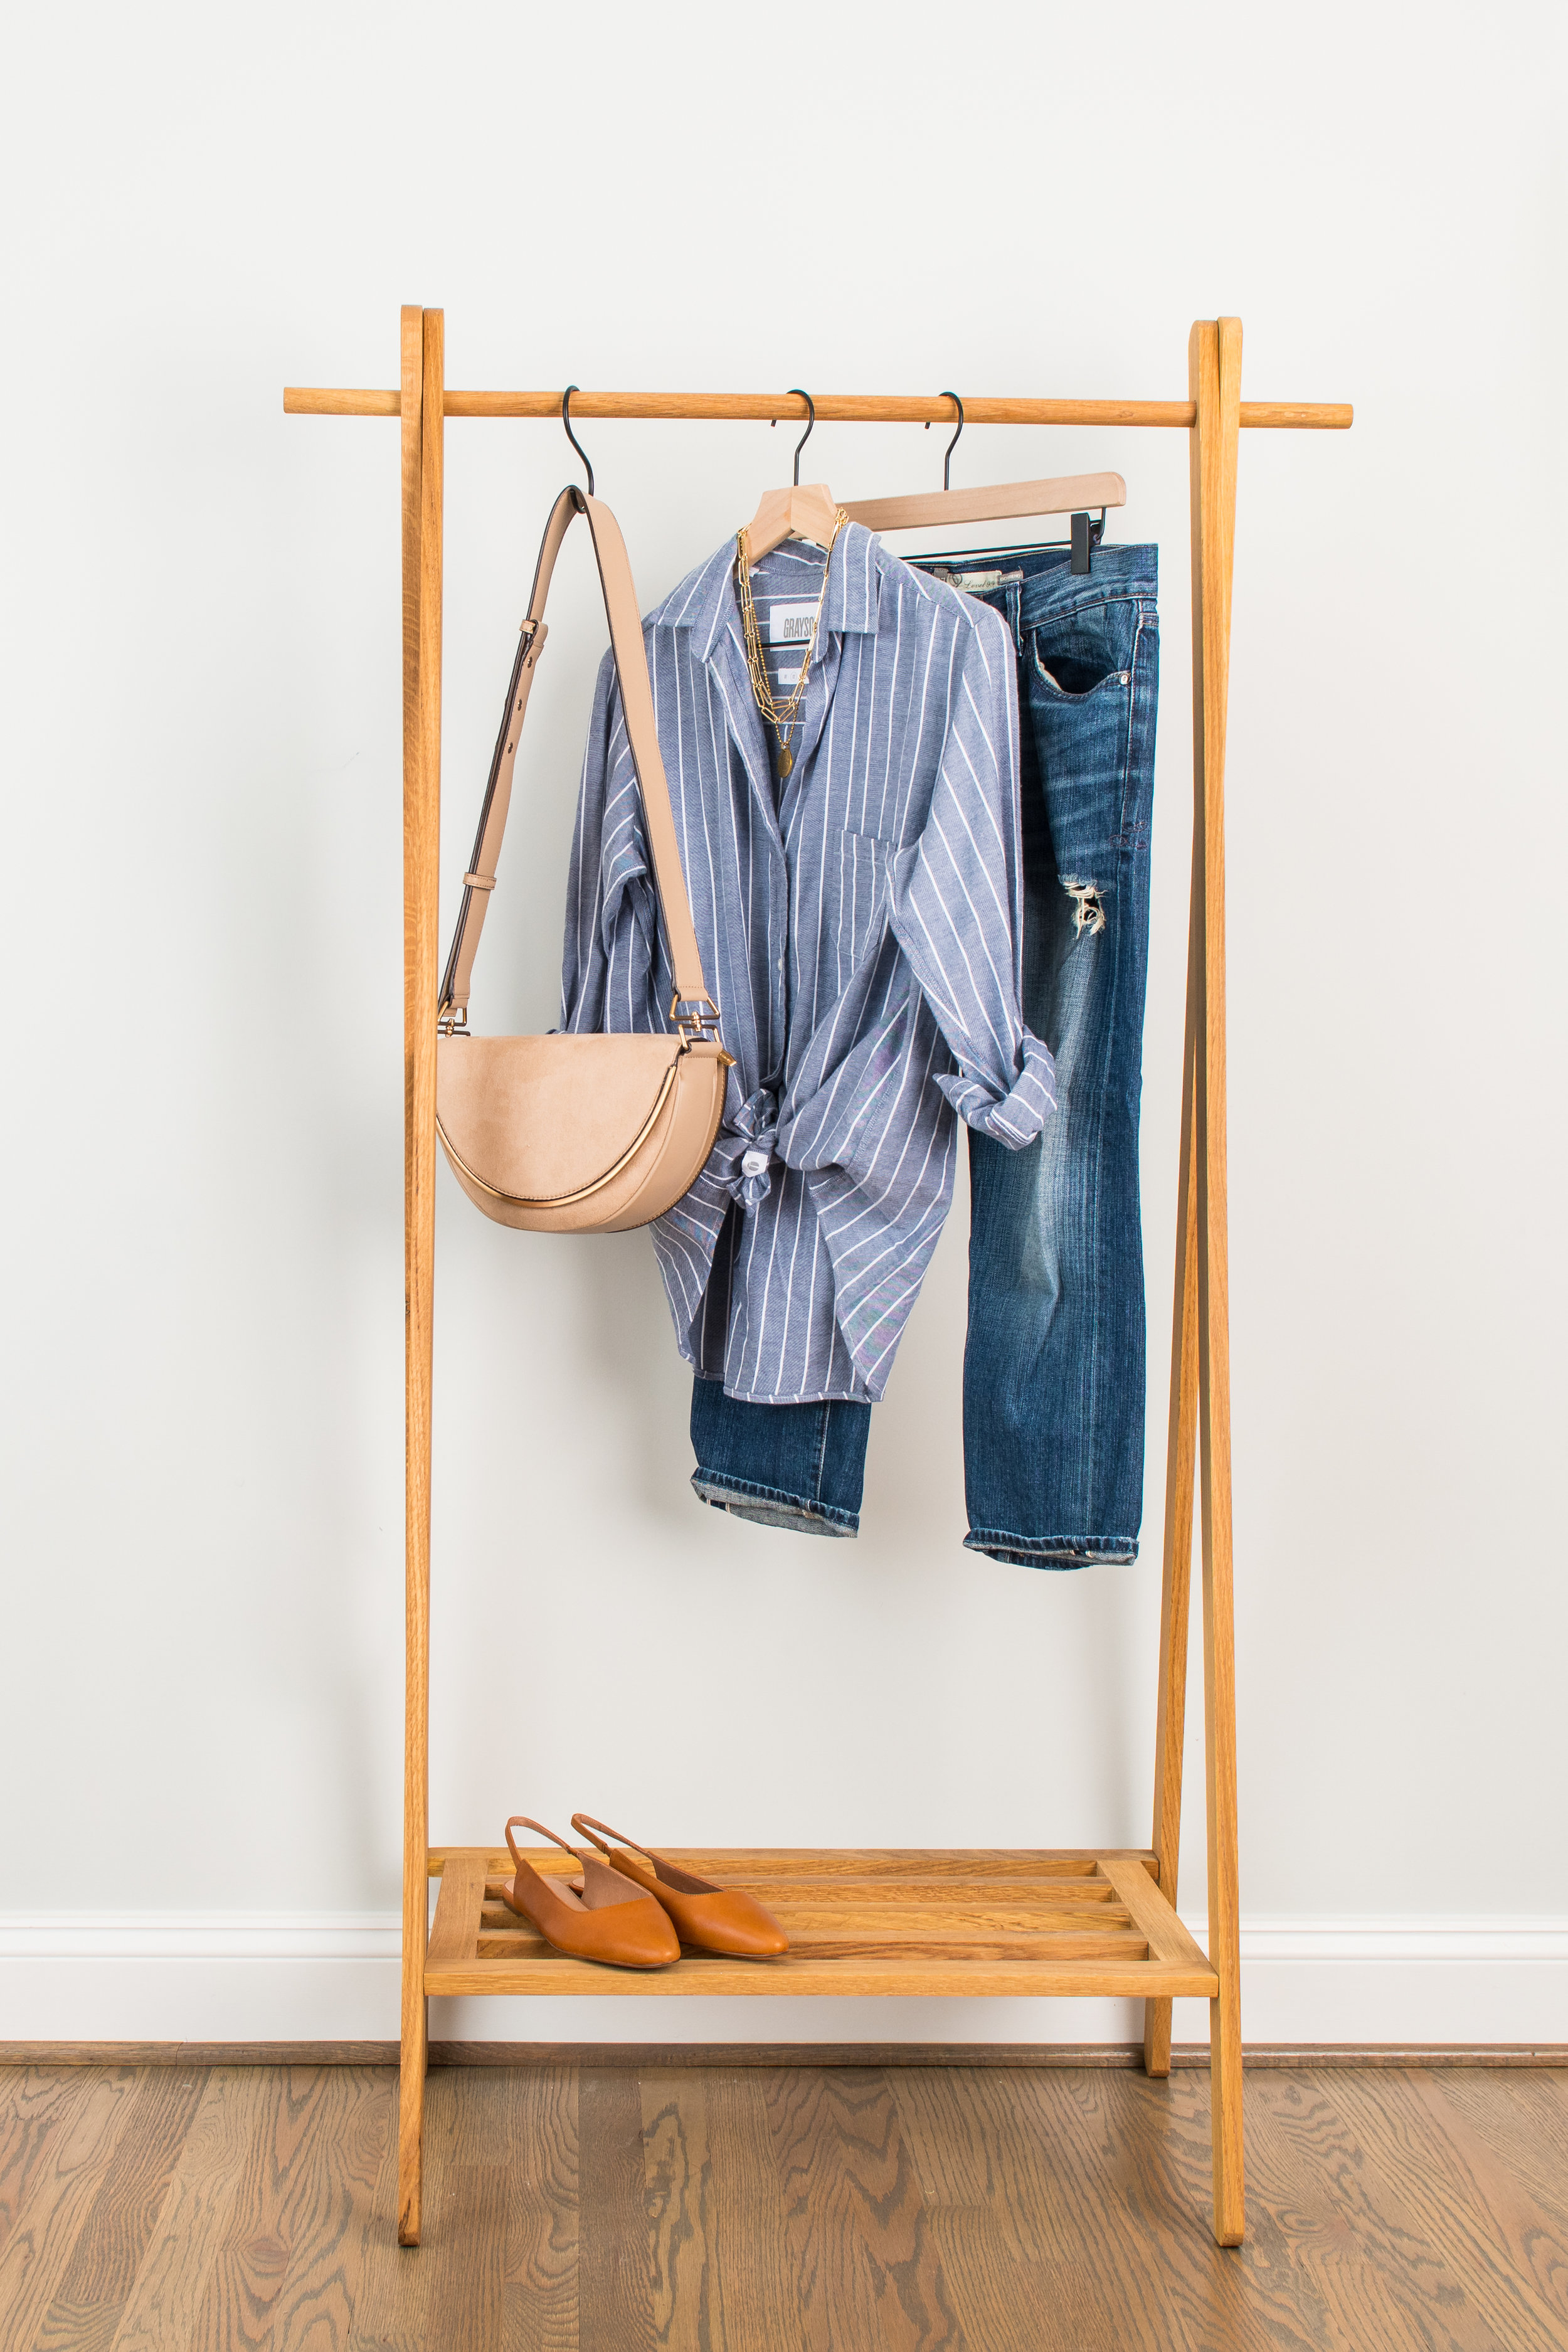 Striped & Distressed - Wear to: Lunch with friends or casual dinnerButton Down: 1 // 2 // 3Distressed Denim: 1 // 2 // 3Brown Slingbacks: 1 // 2 // 3Necklace: 1 // 2 // 3Bag : 1 // 2 // 3